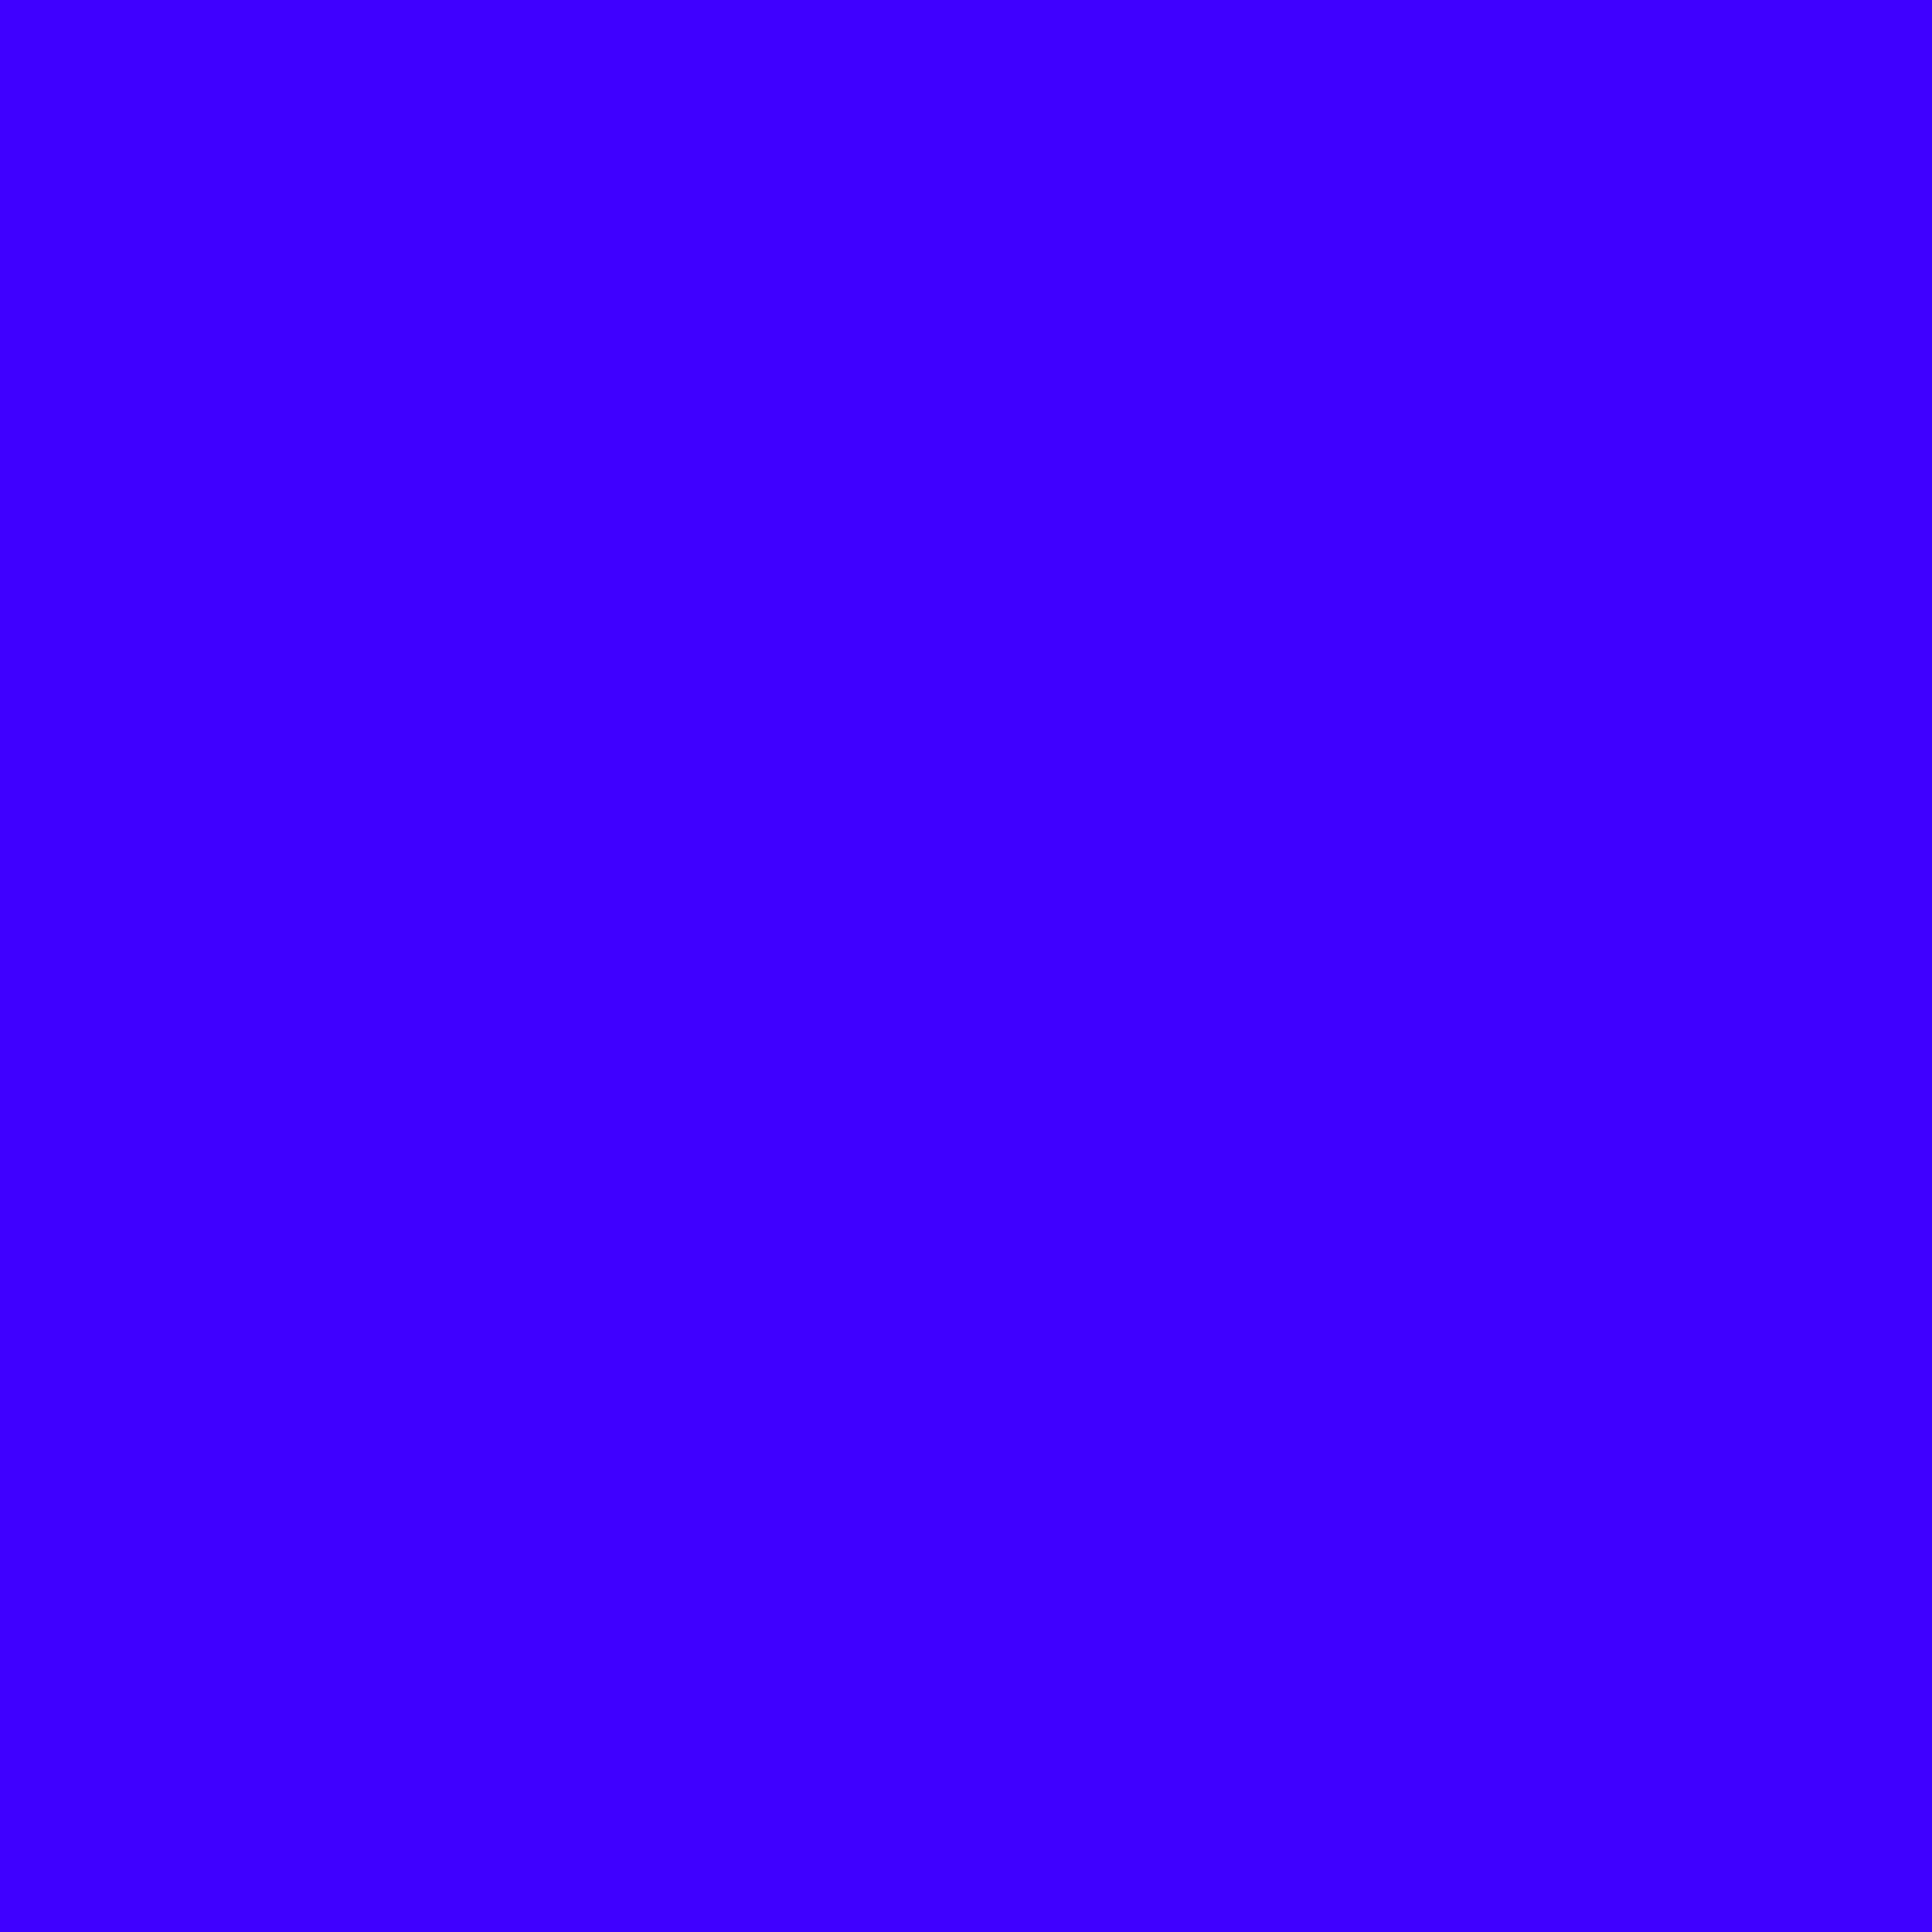 2732x2732 Electric Ultramarine Solid Color Background